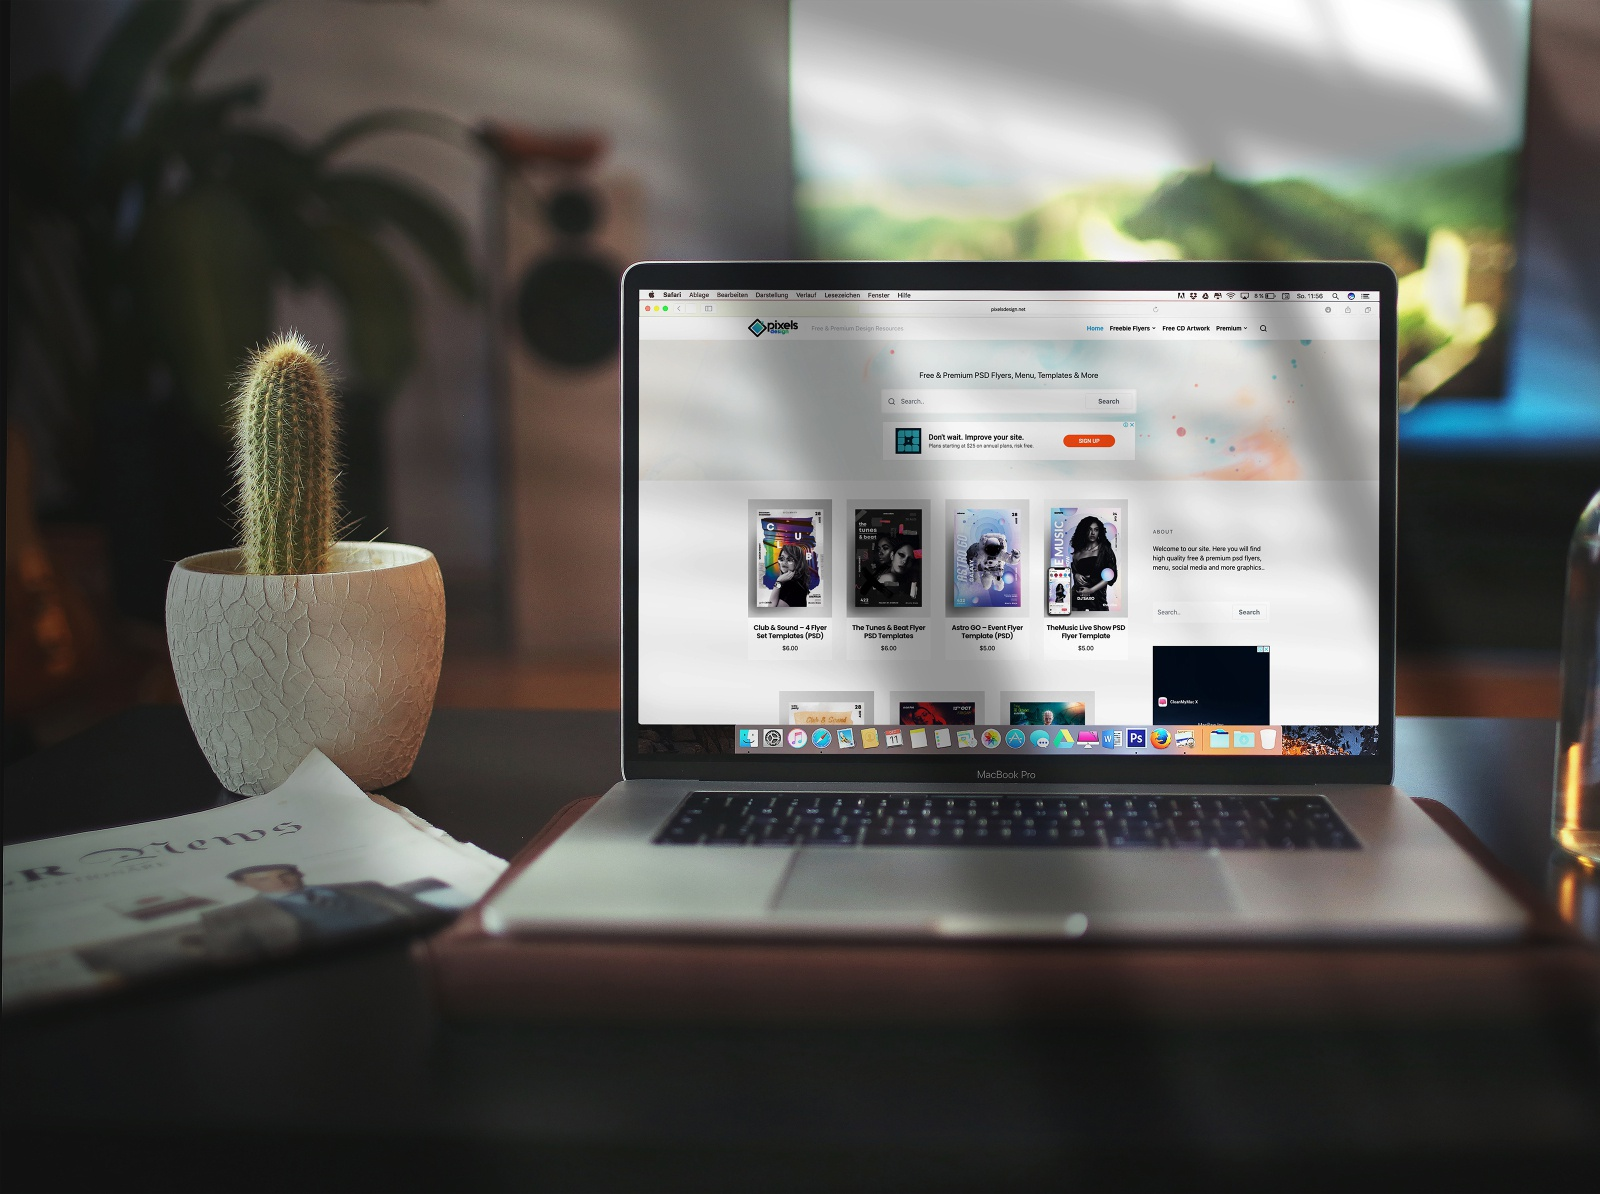 Macbook Pro on Desk Free PSD Mockup